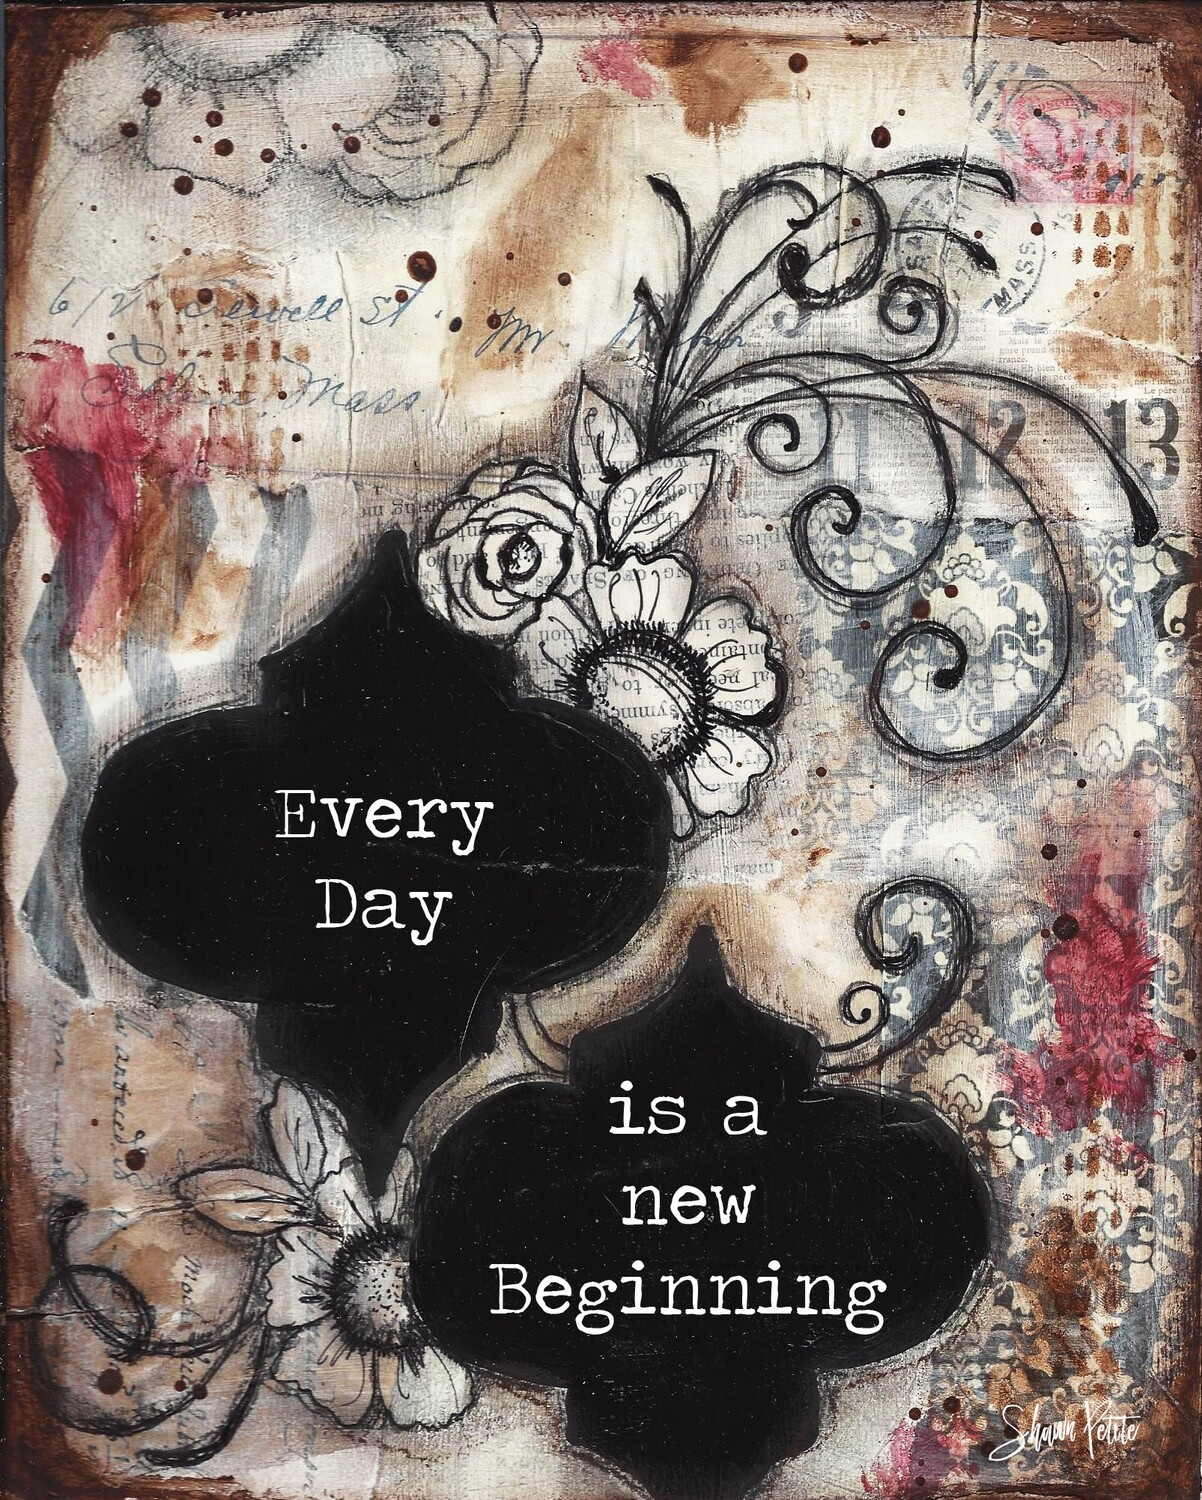 Every Day is a new beginning  Print on Wood 5x7 Overstock